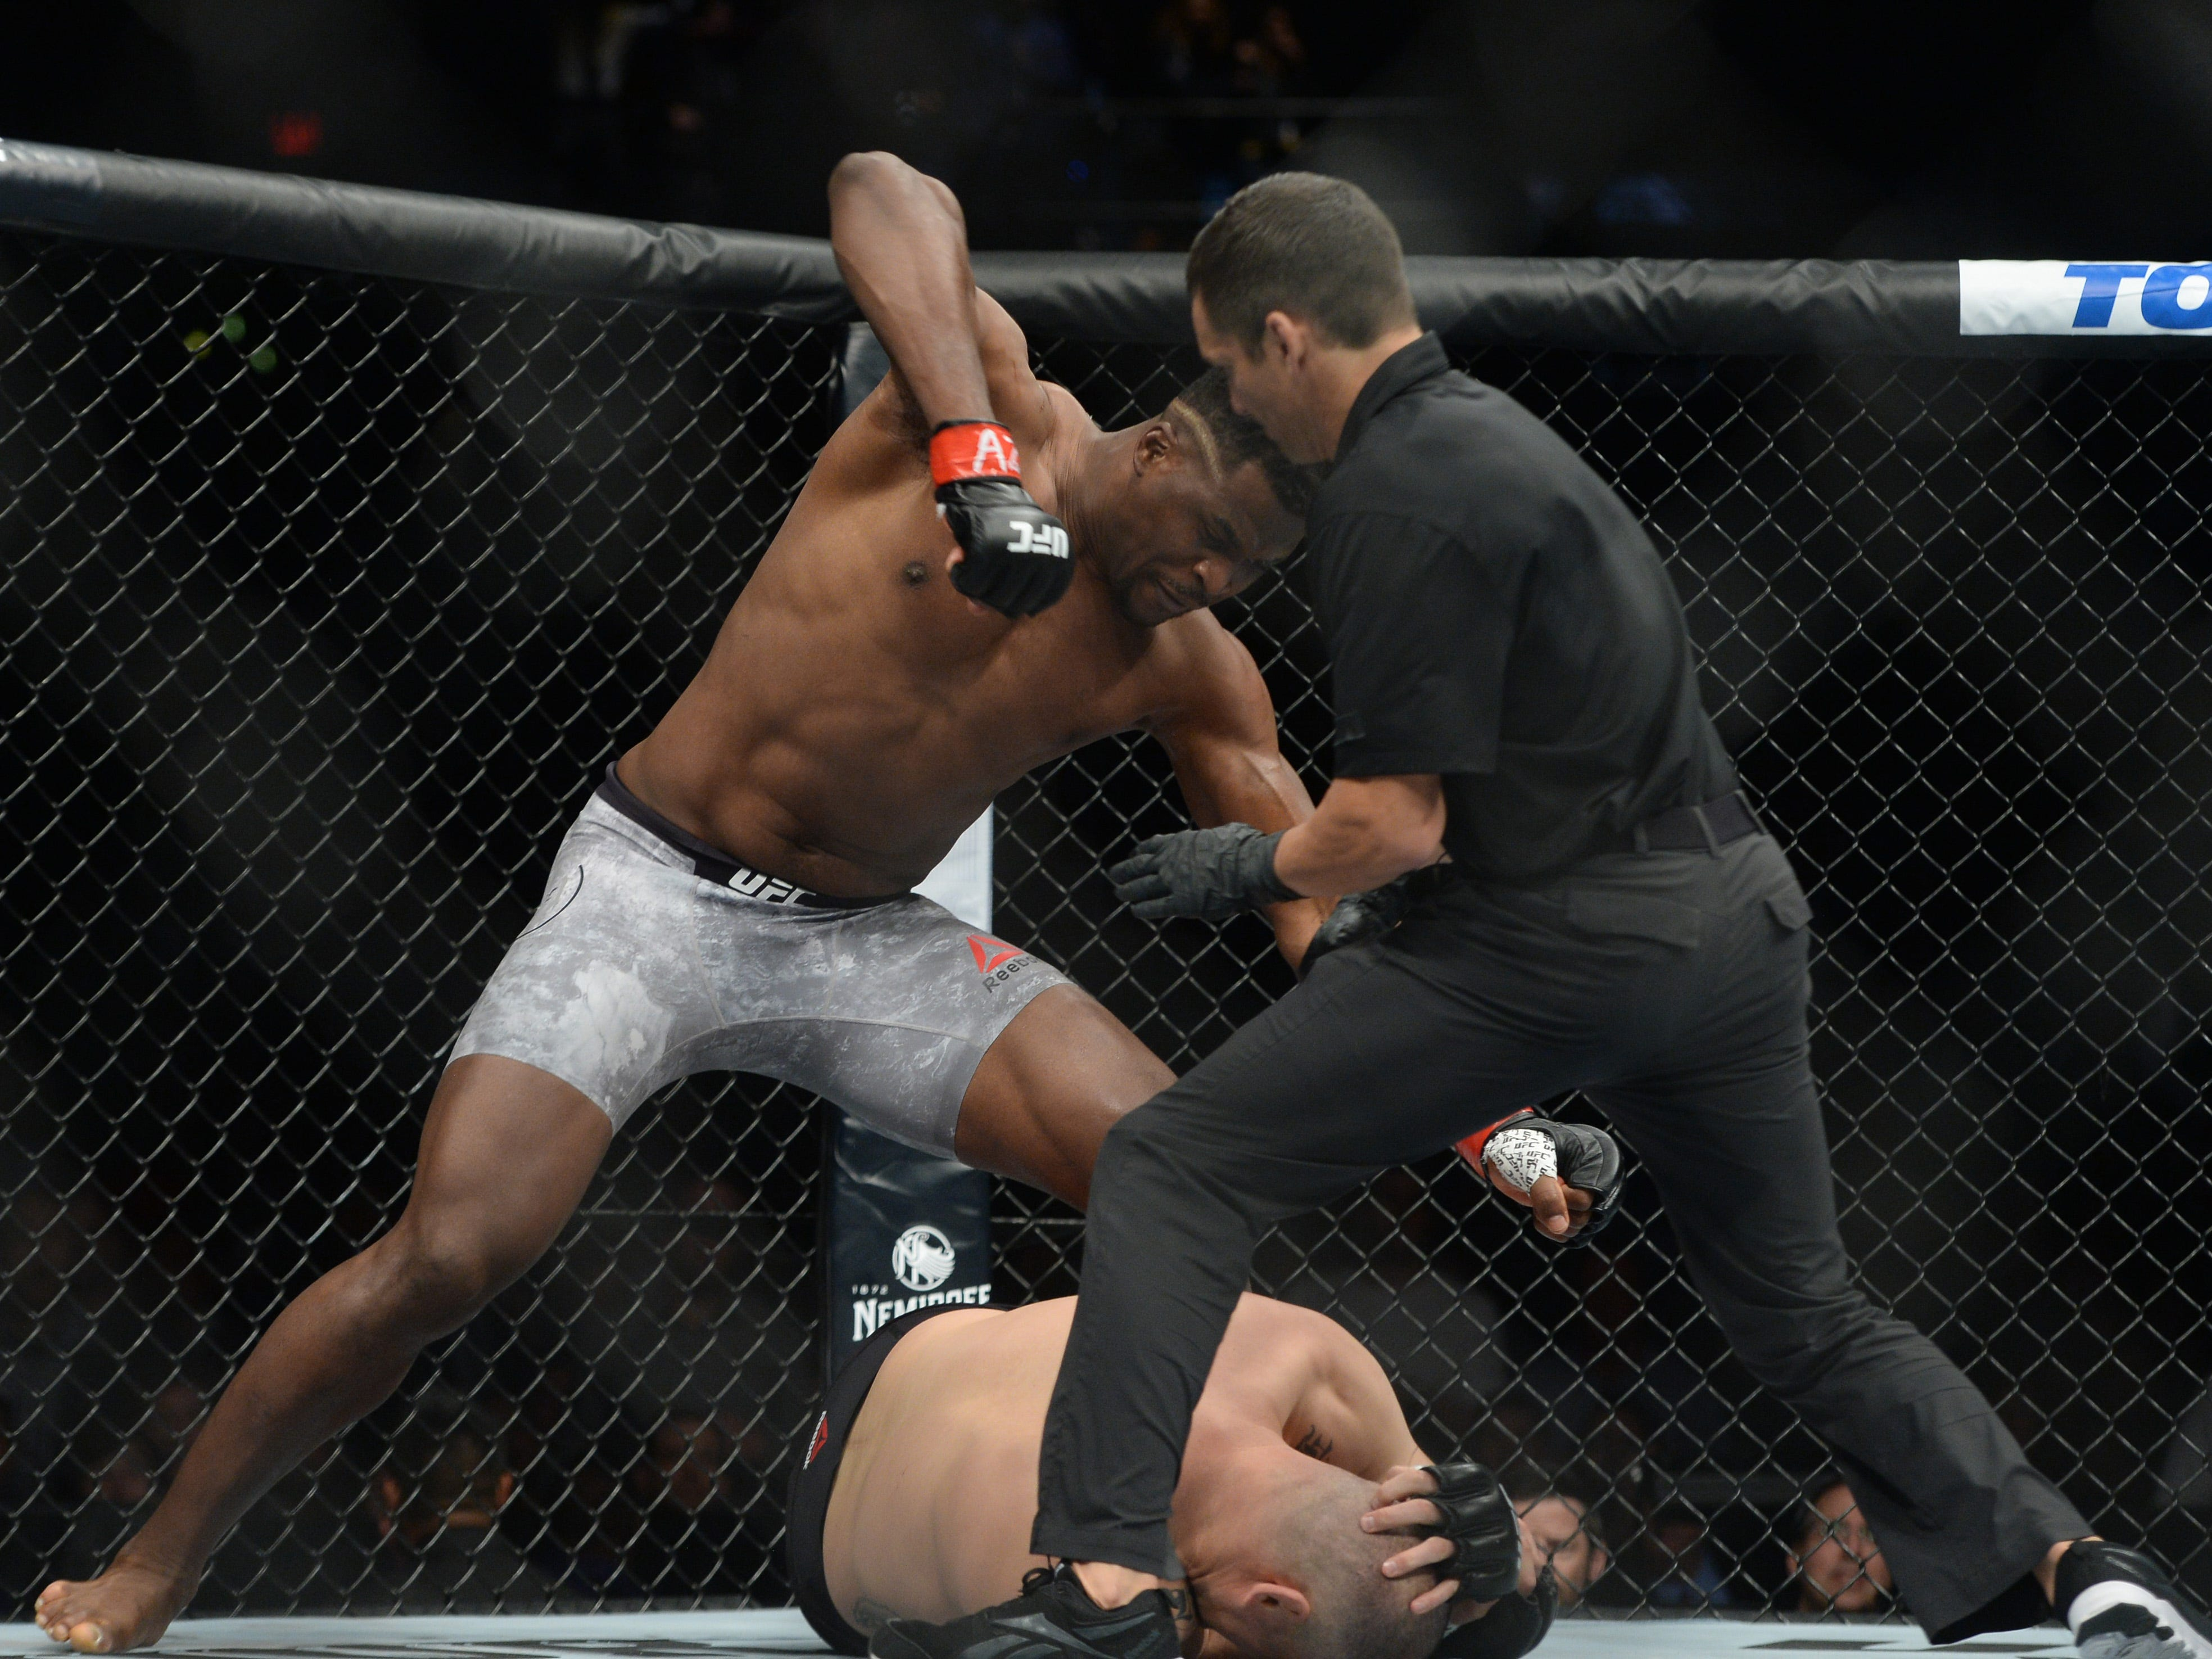 Francis Ngannou knocks out Cain Velasquez 26 seconds into their heavyweight fight at Talking Stick Resort Arena.